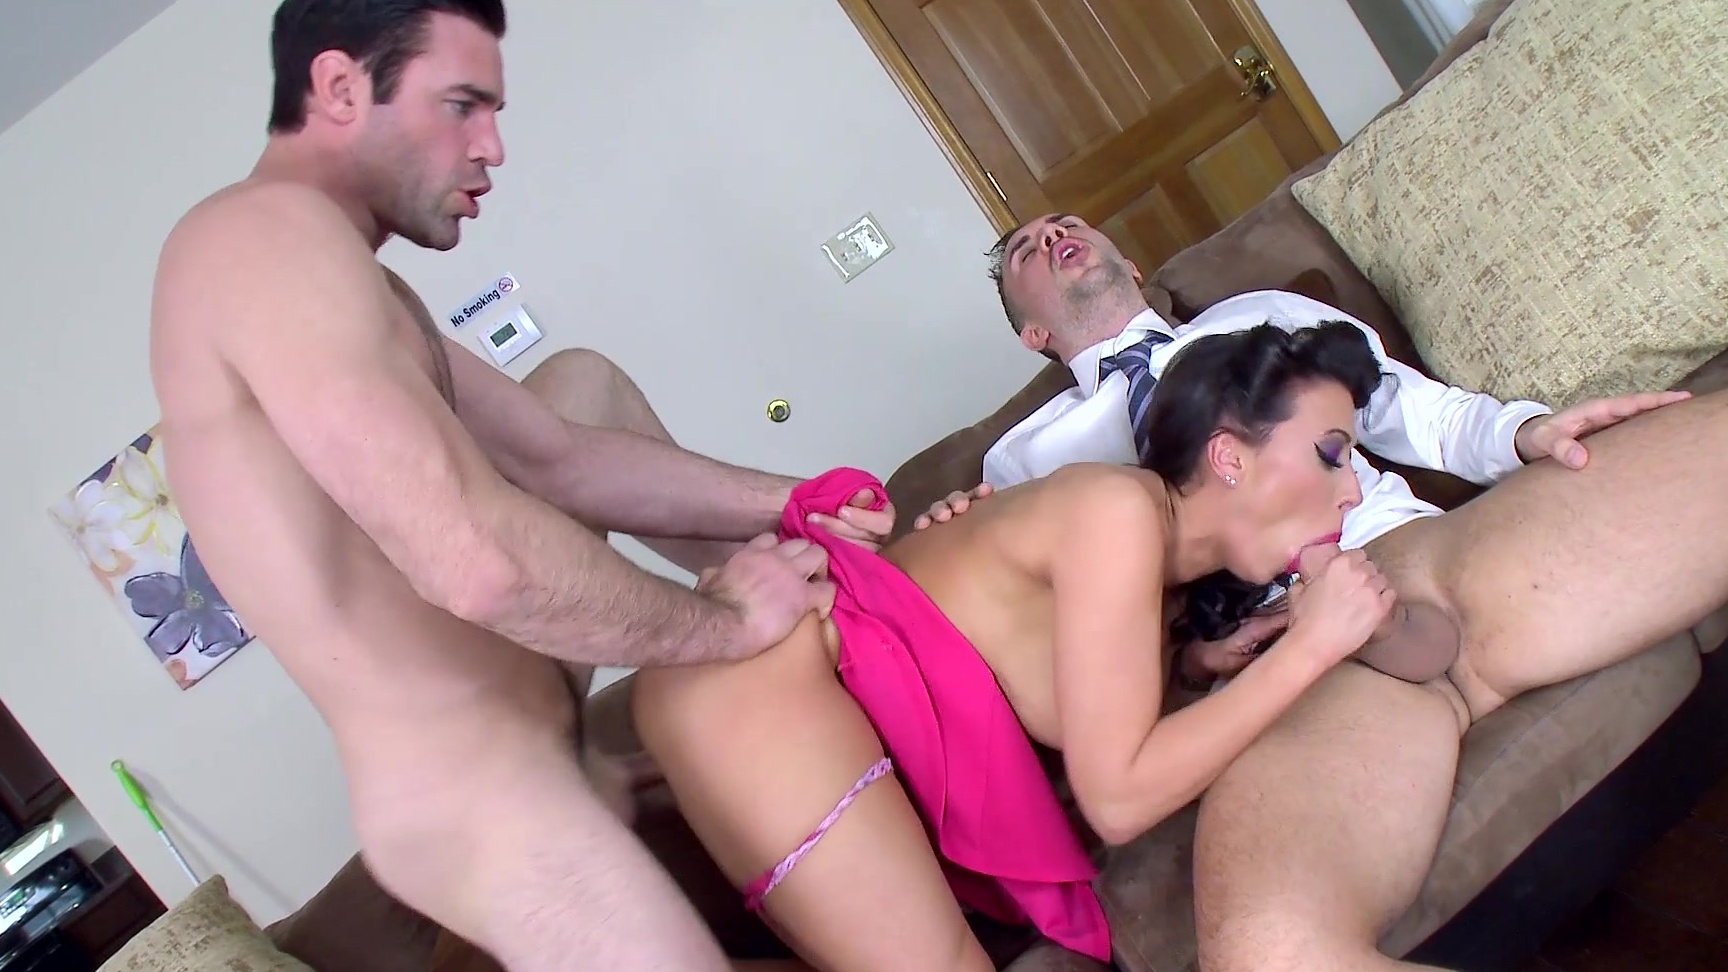 mmf bi hardcore sex-xxx video hot porn